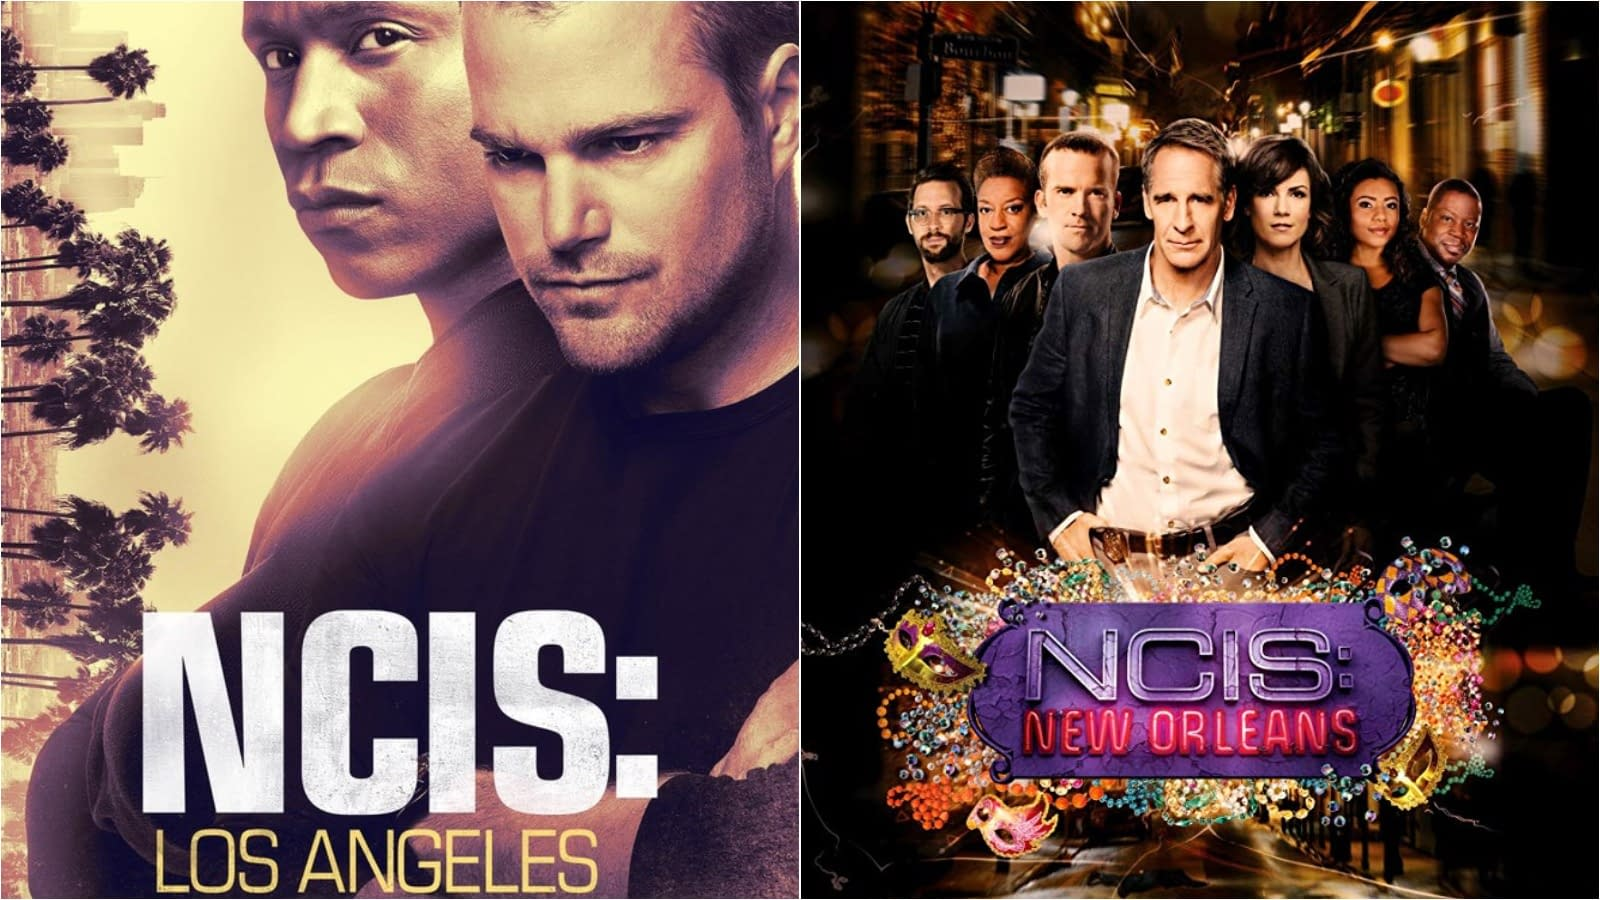 ncis los angeles new orleans